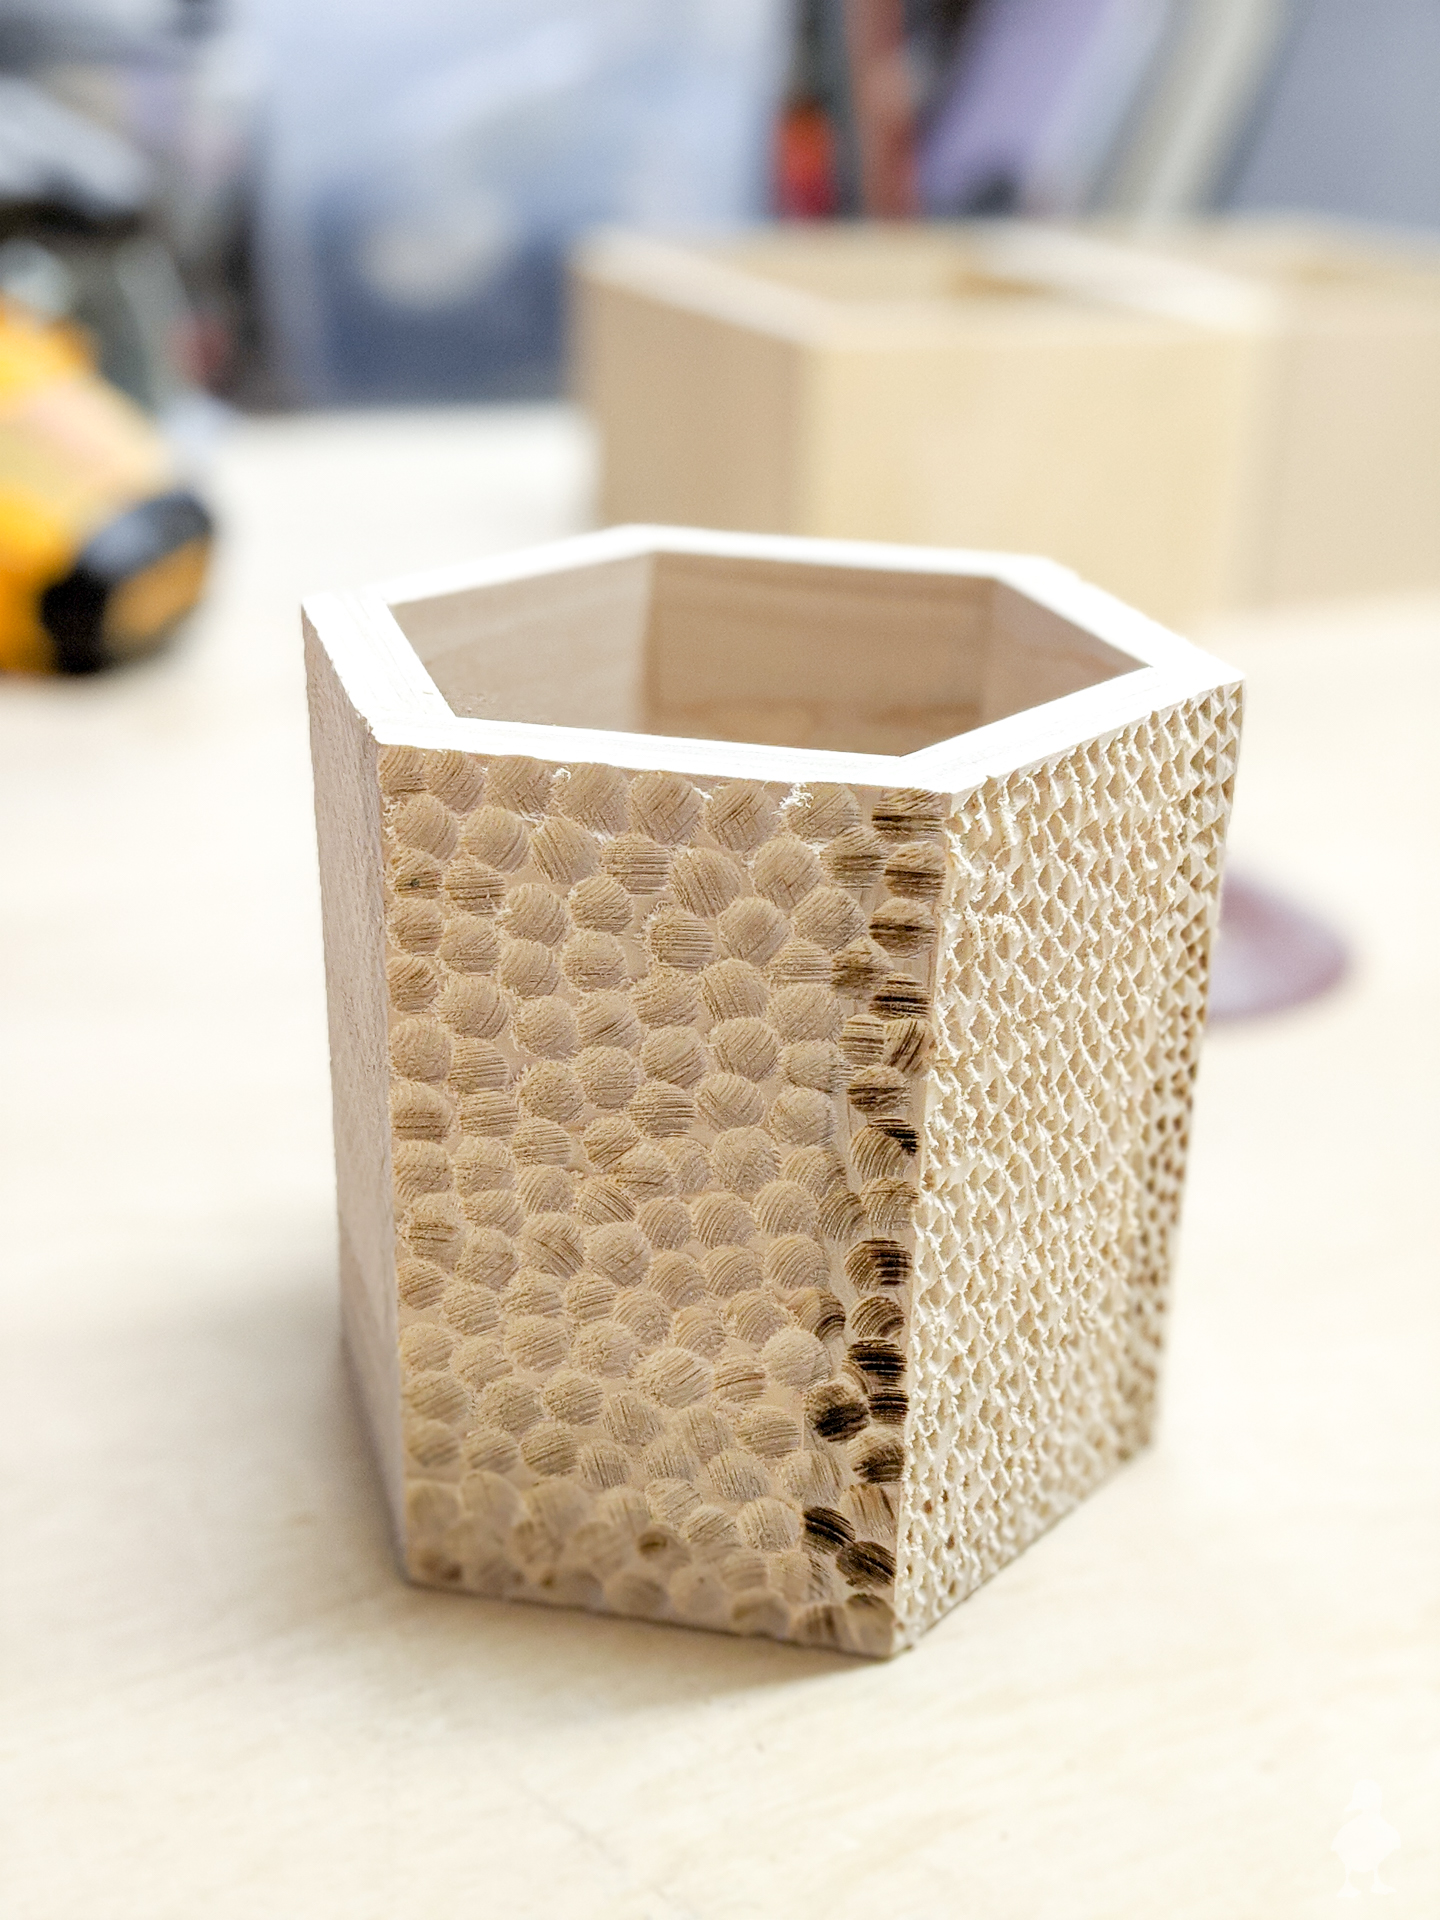 hex planters with carved texture on each side from dremel or die grinder